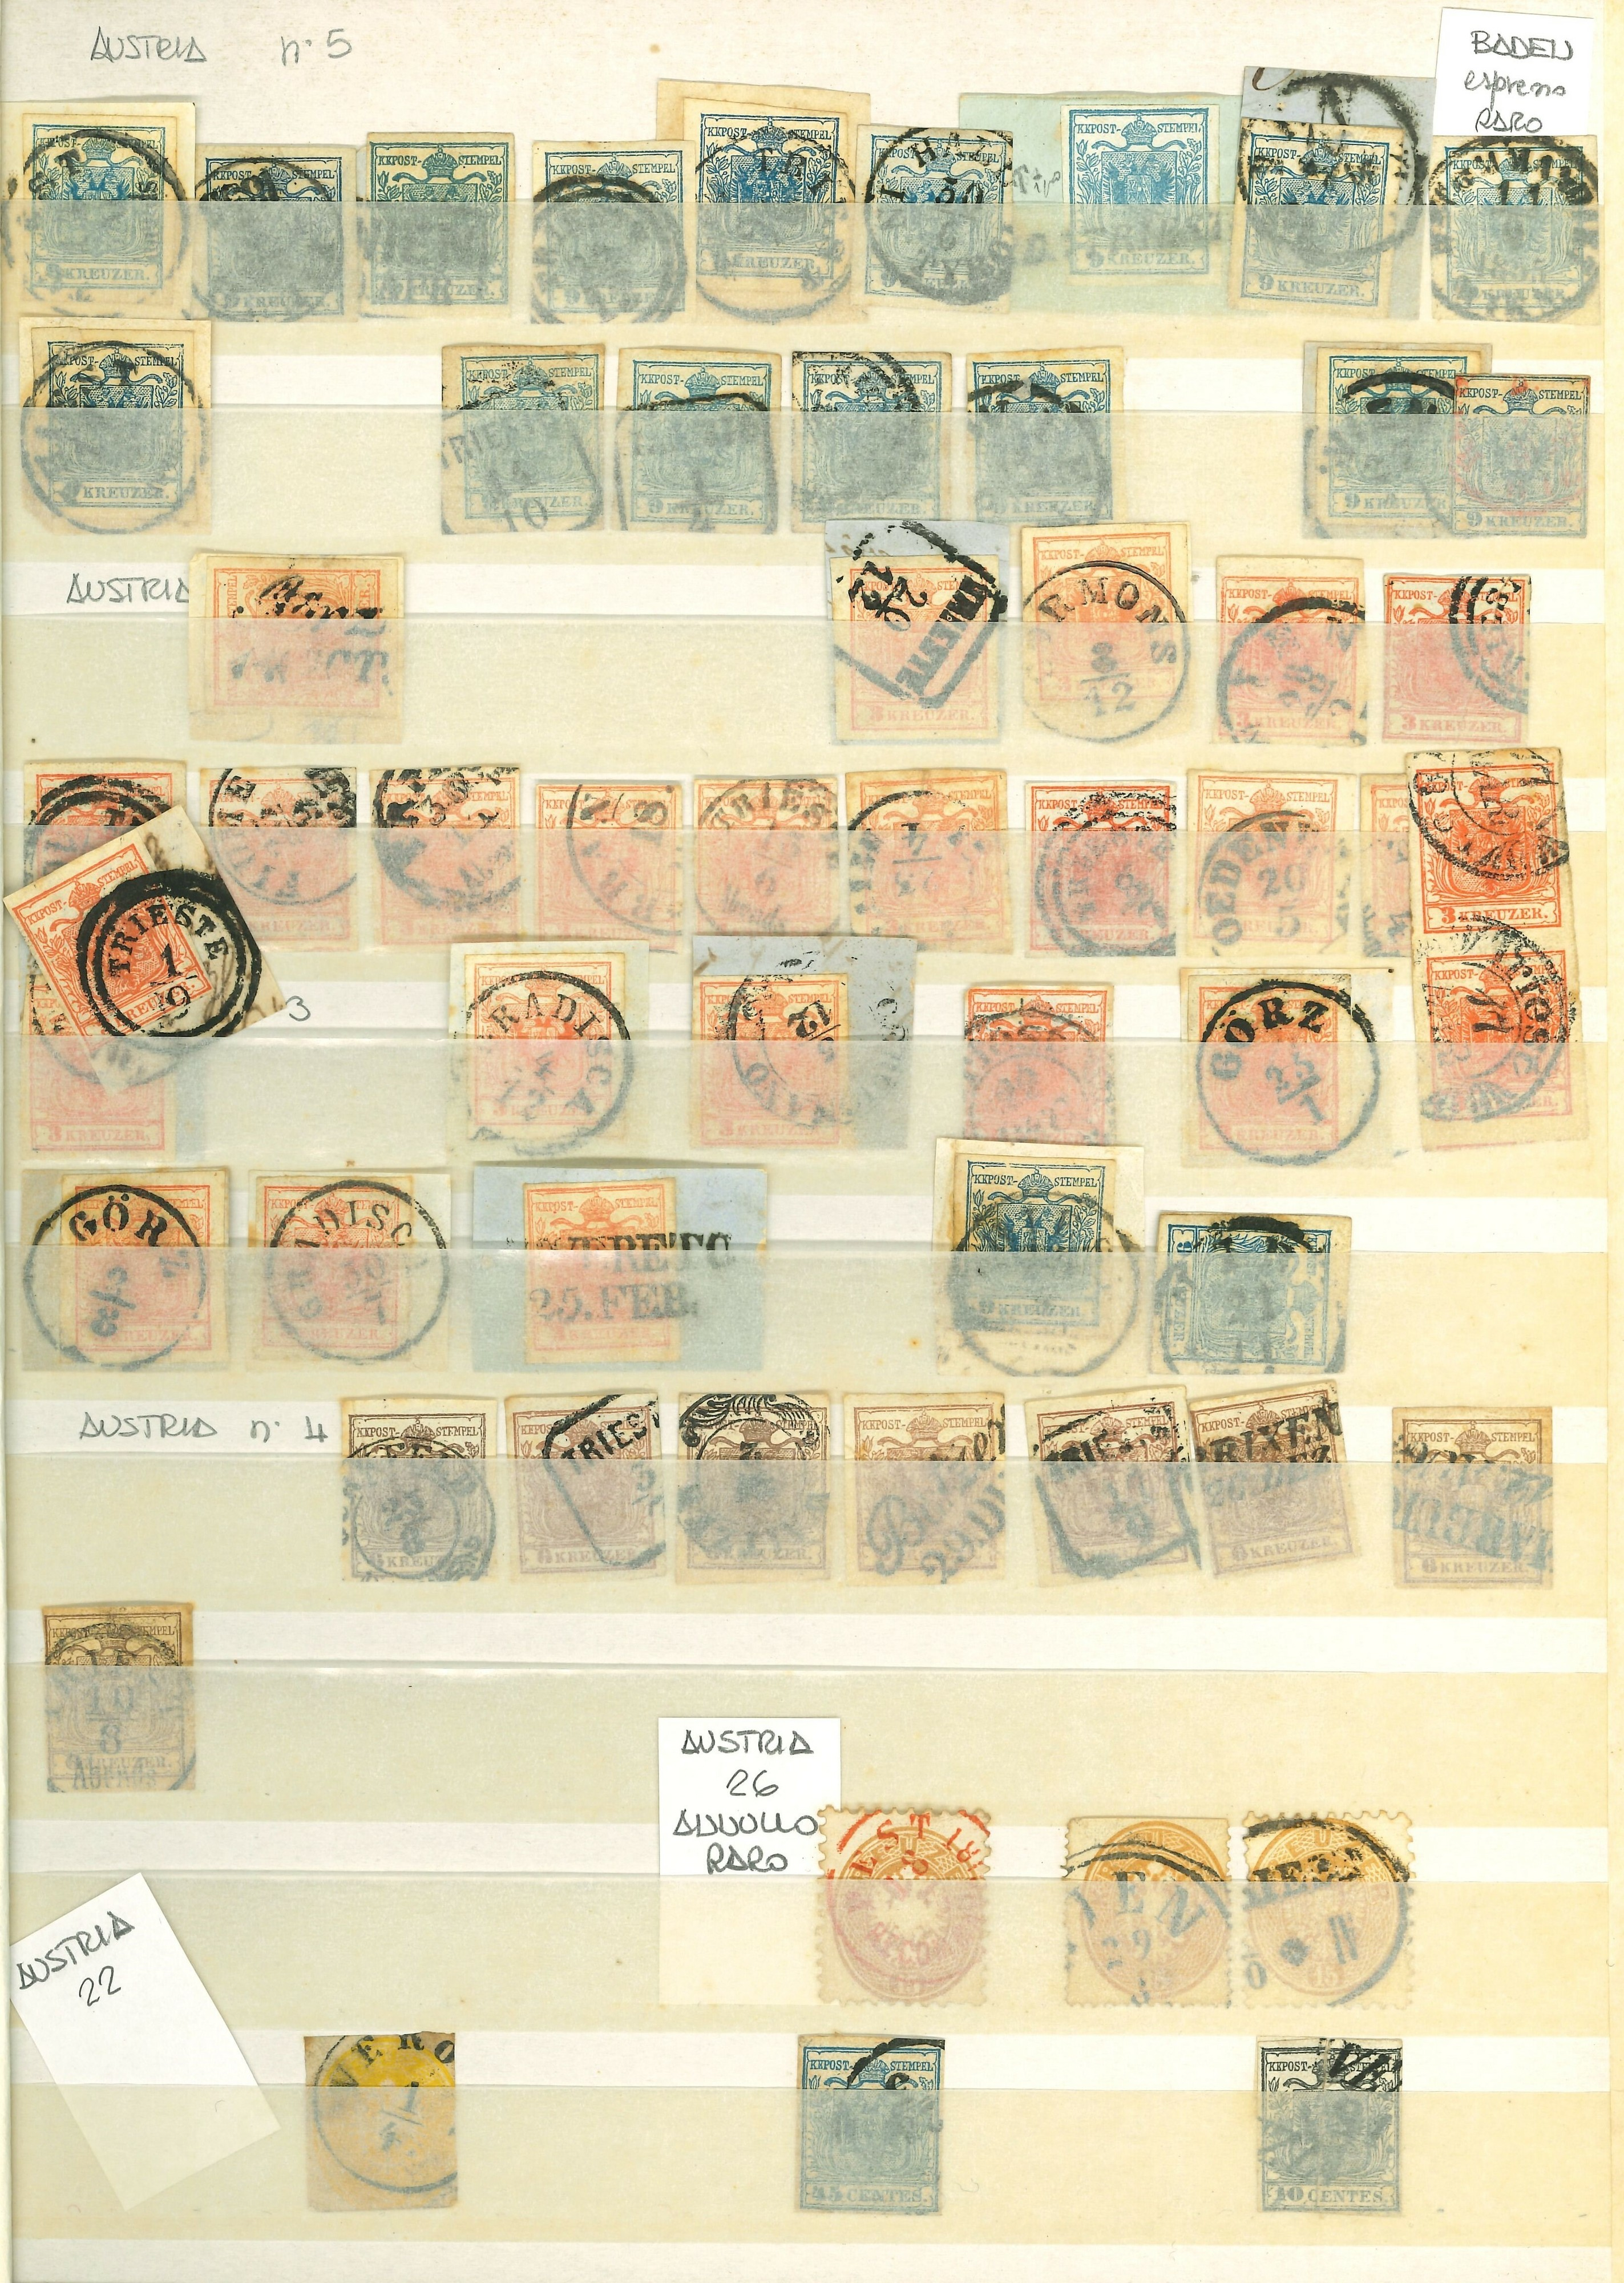 Lot 2567 - PAESI EUROPEI Lots & Collections -  Ponte Auction House Stamps Auction 505